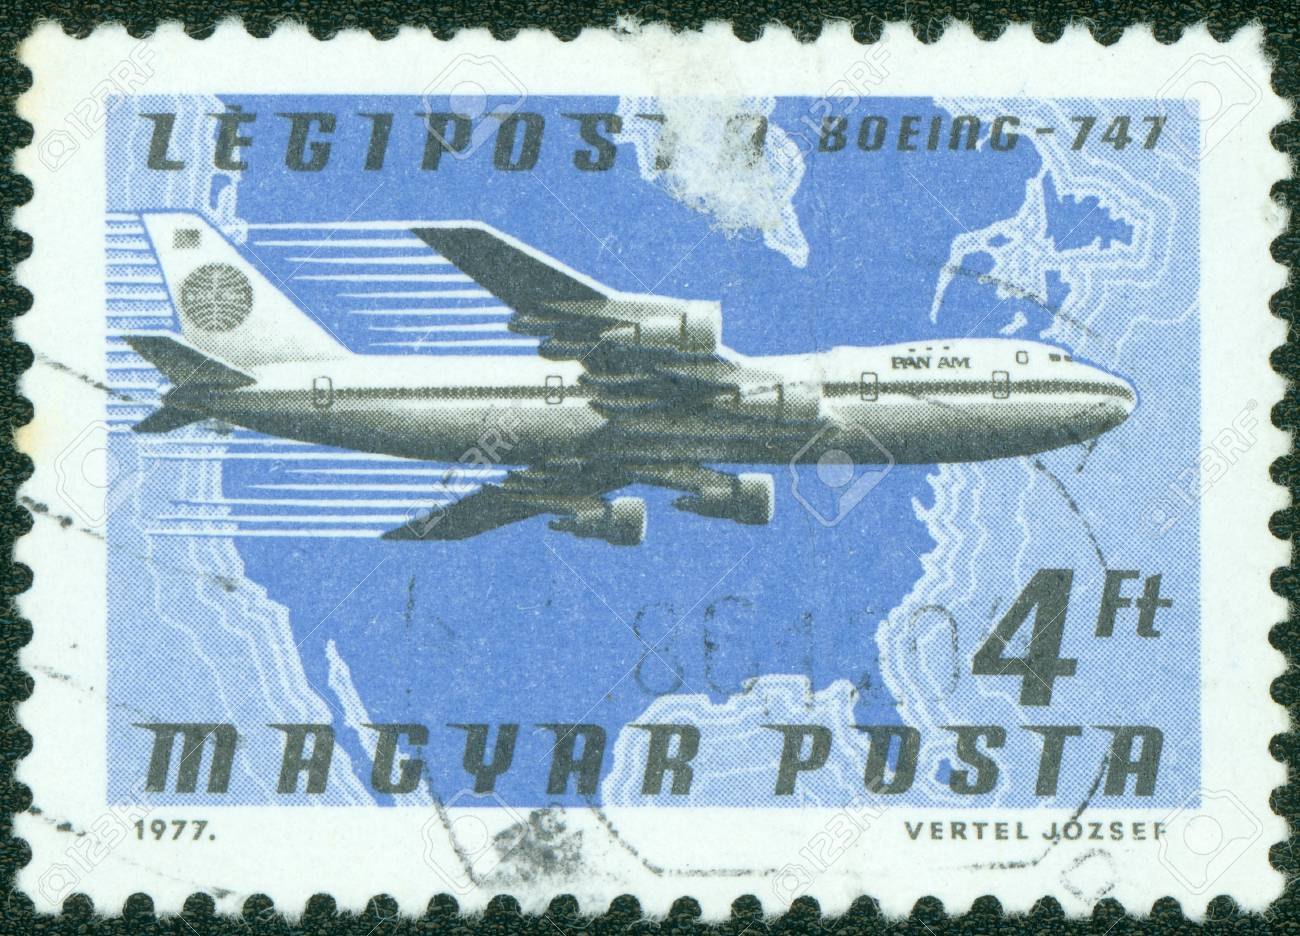 HUNGARY - CIRCA 1977  A stamp printed in Hungary shows Boeing 747, circa 1977 Stock Photo - 16043008